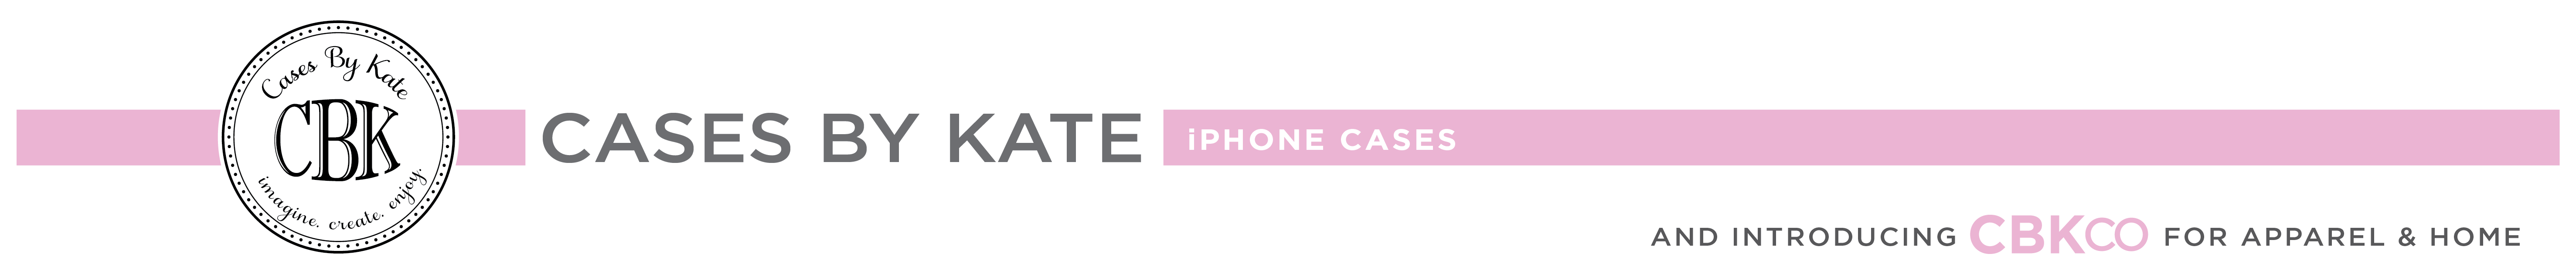 Cases by Kate